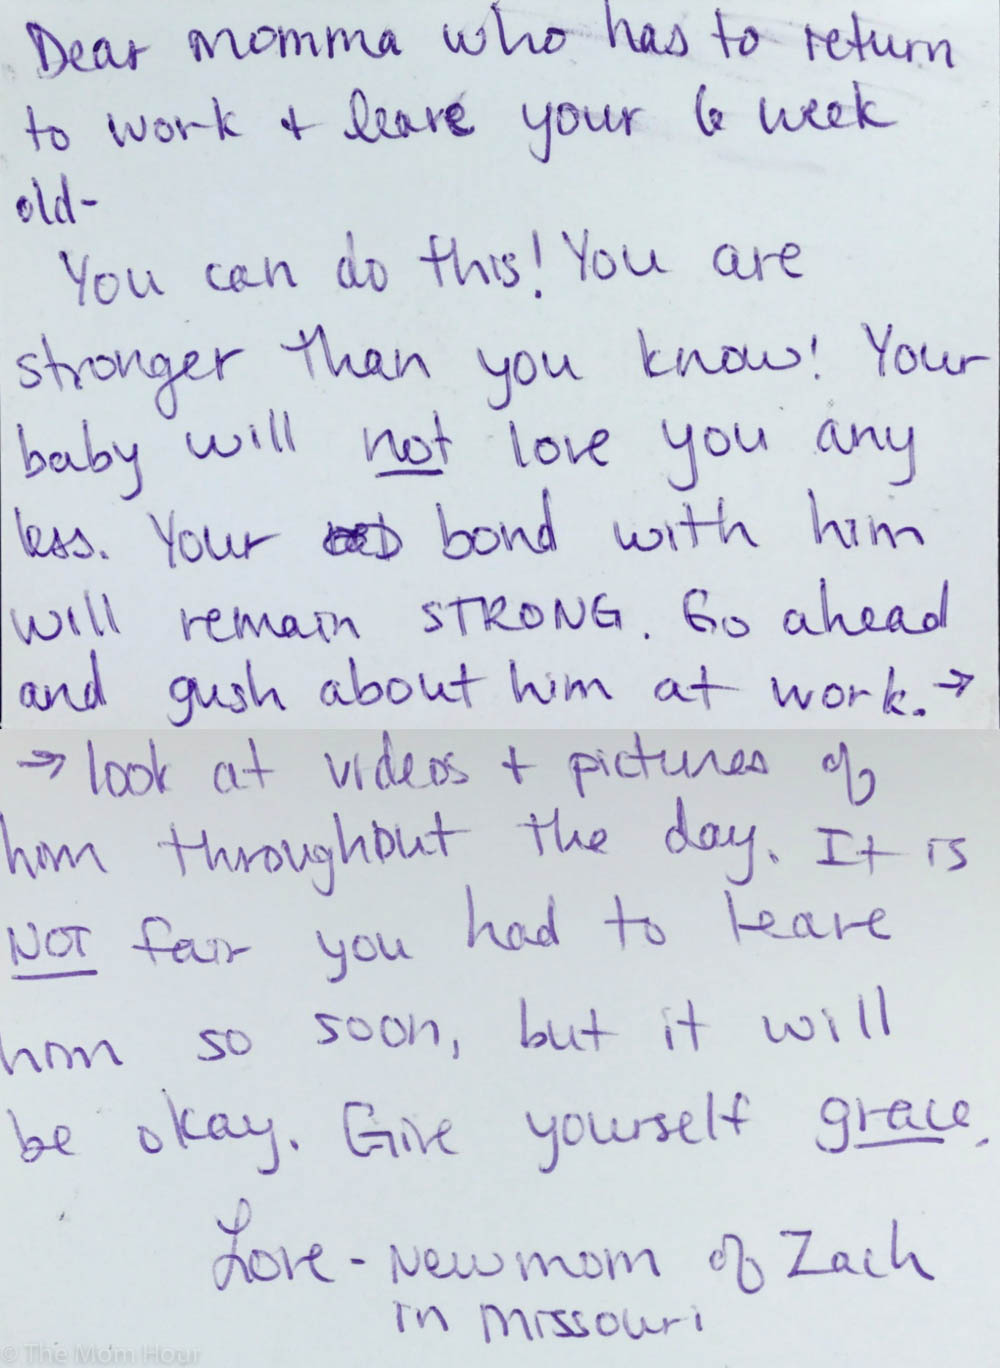 These handwritten Mother's Day letters prove moms have each